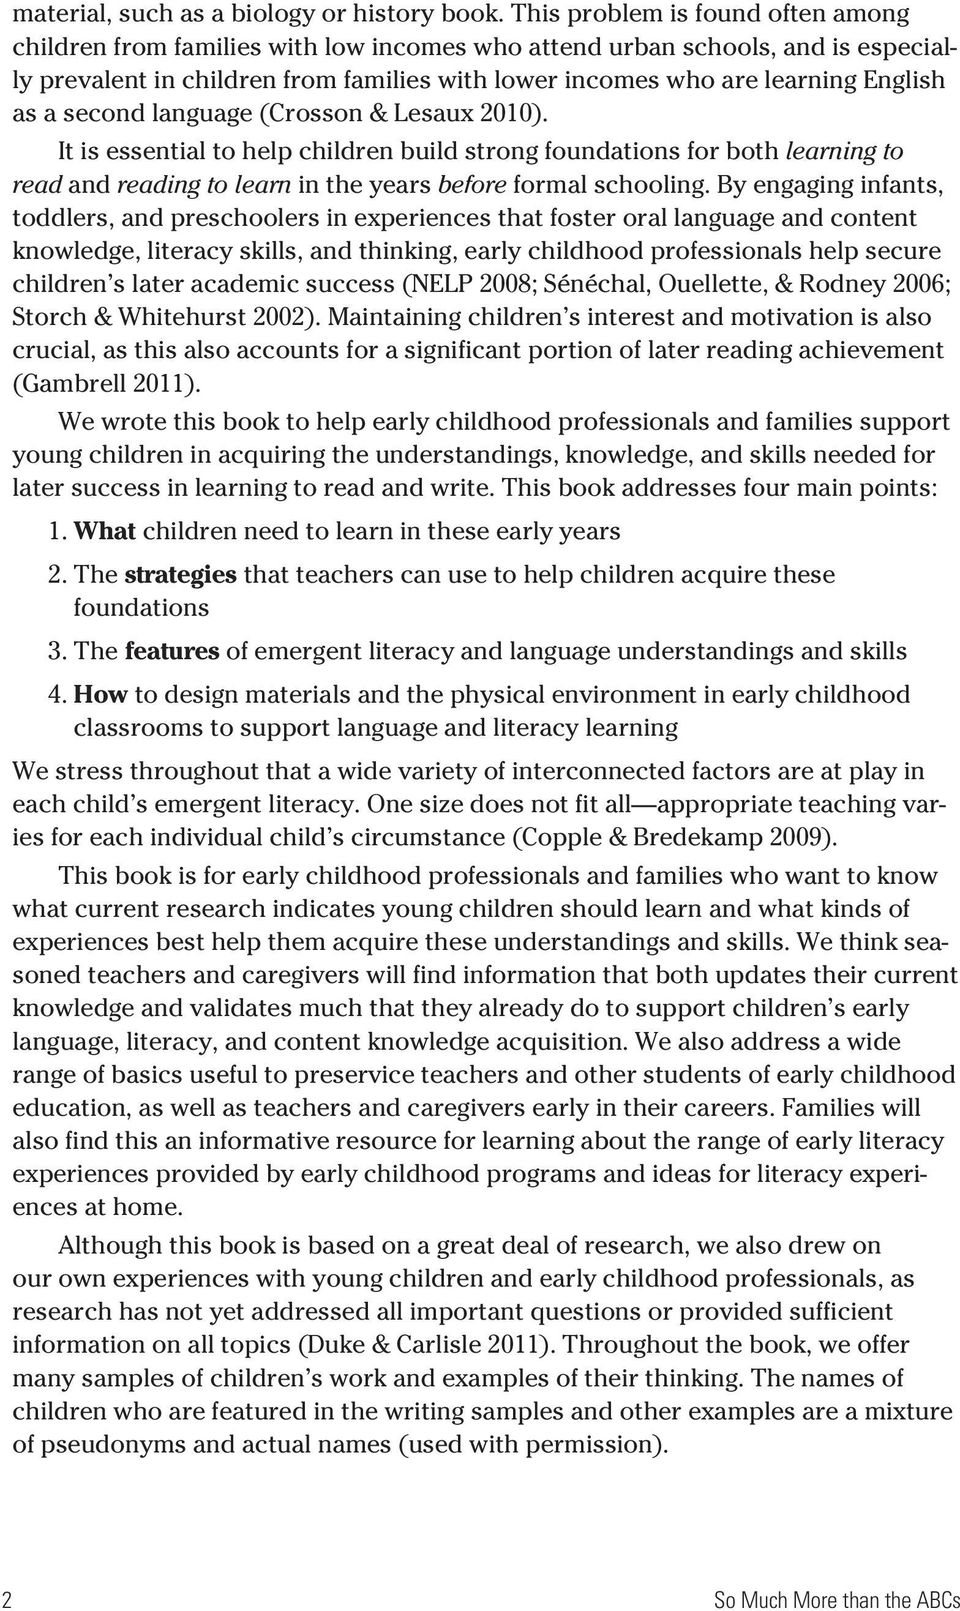 as a second language (Crosson & Lesaux 2010). It is essential to help children build strong foundations for both learning to read and reading to learn in the years before formal schooling.